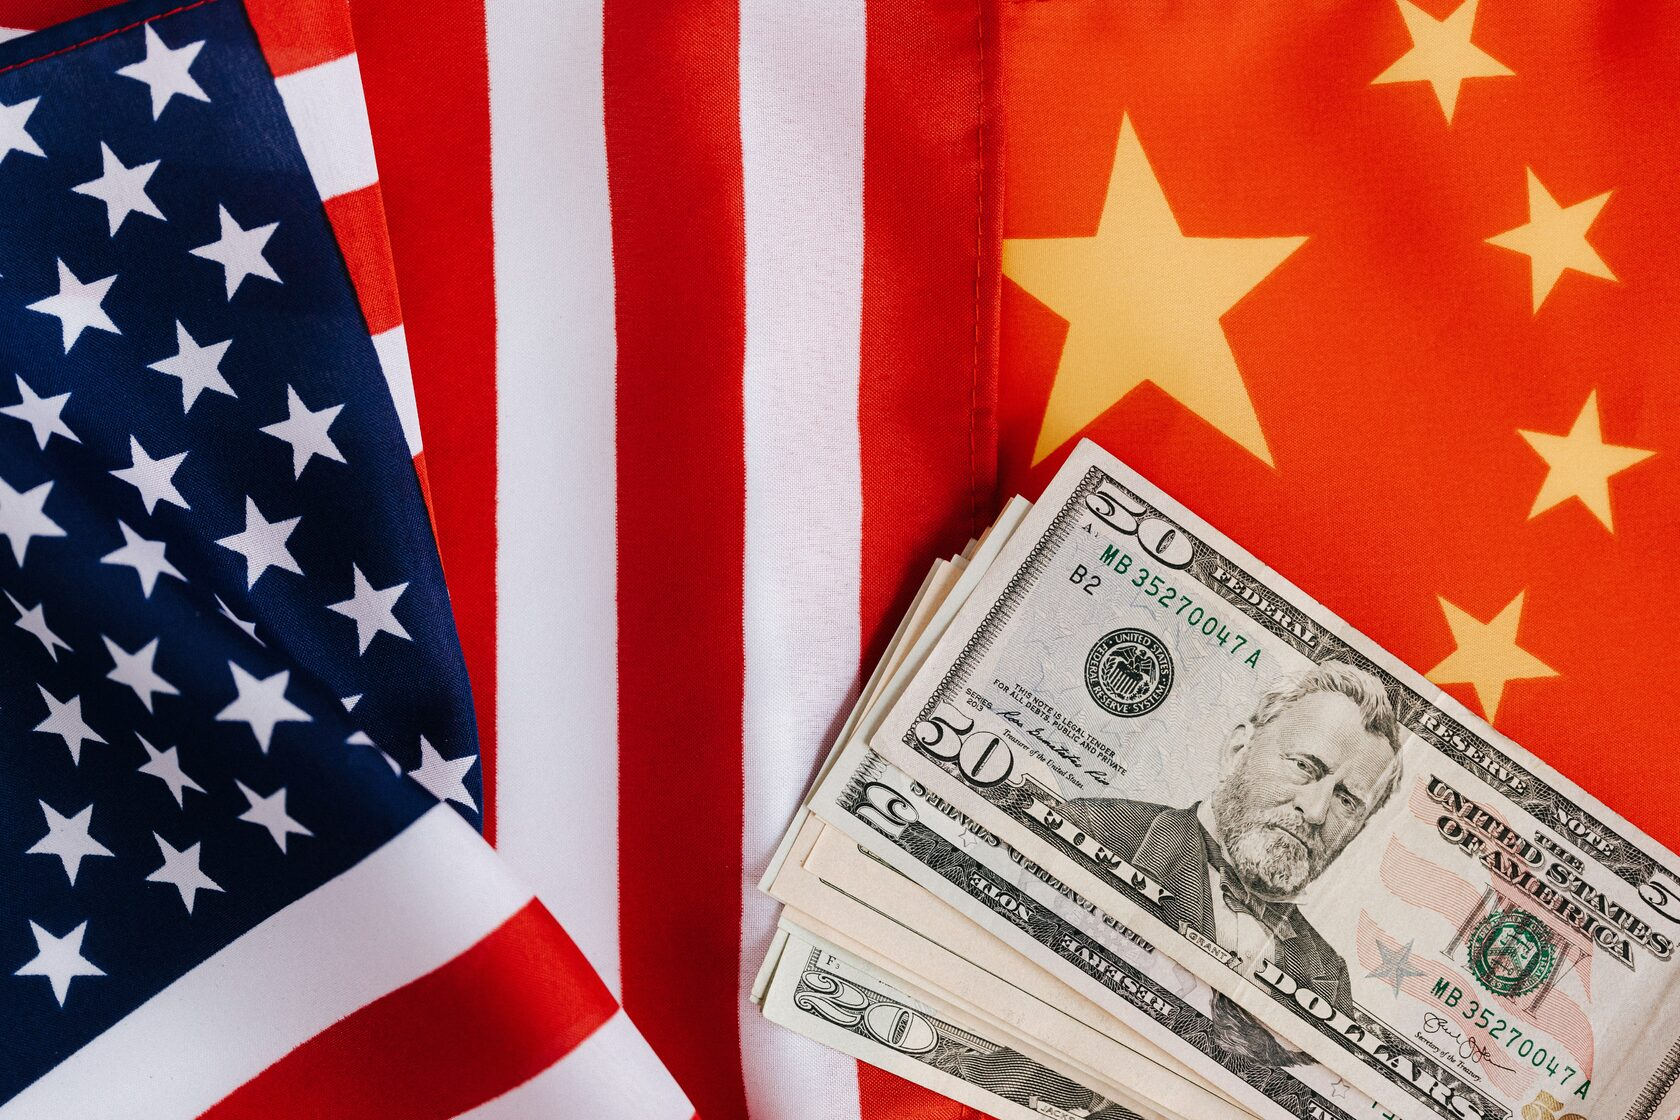 US and China flags with currency